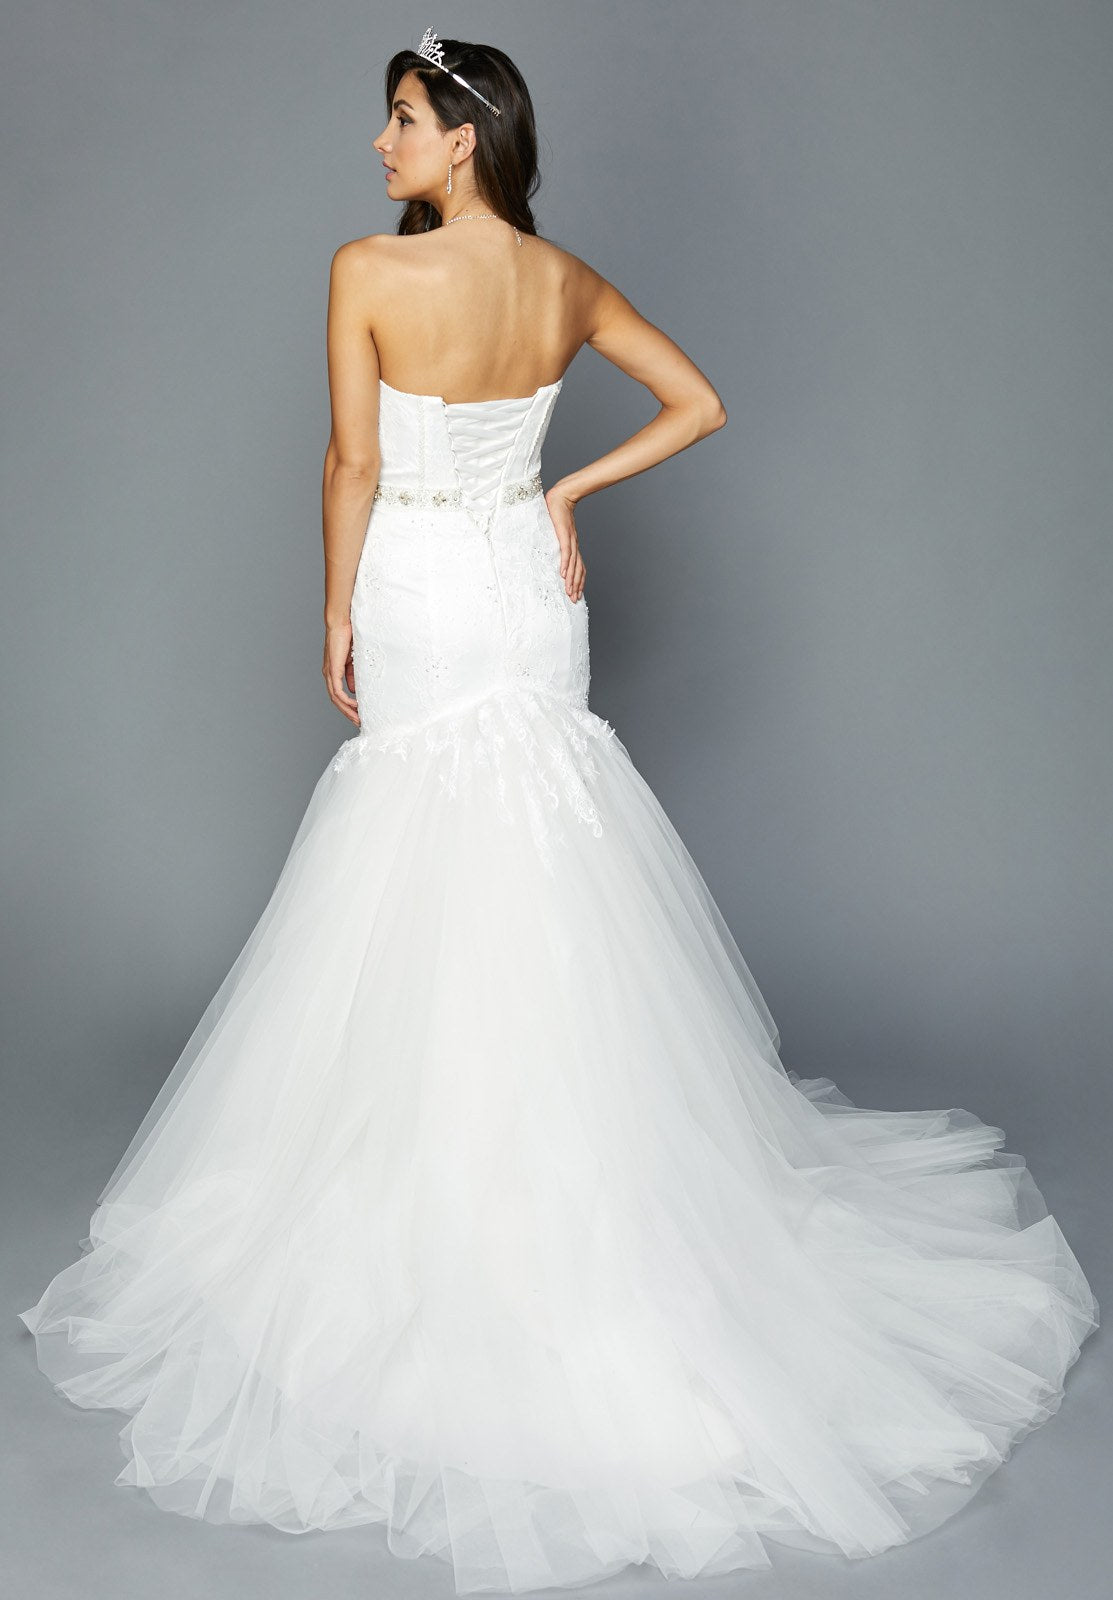 Strapless White Wedding Gown Beaded Bodice and Waist Trumpet Style ...